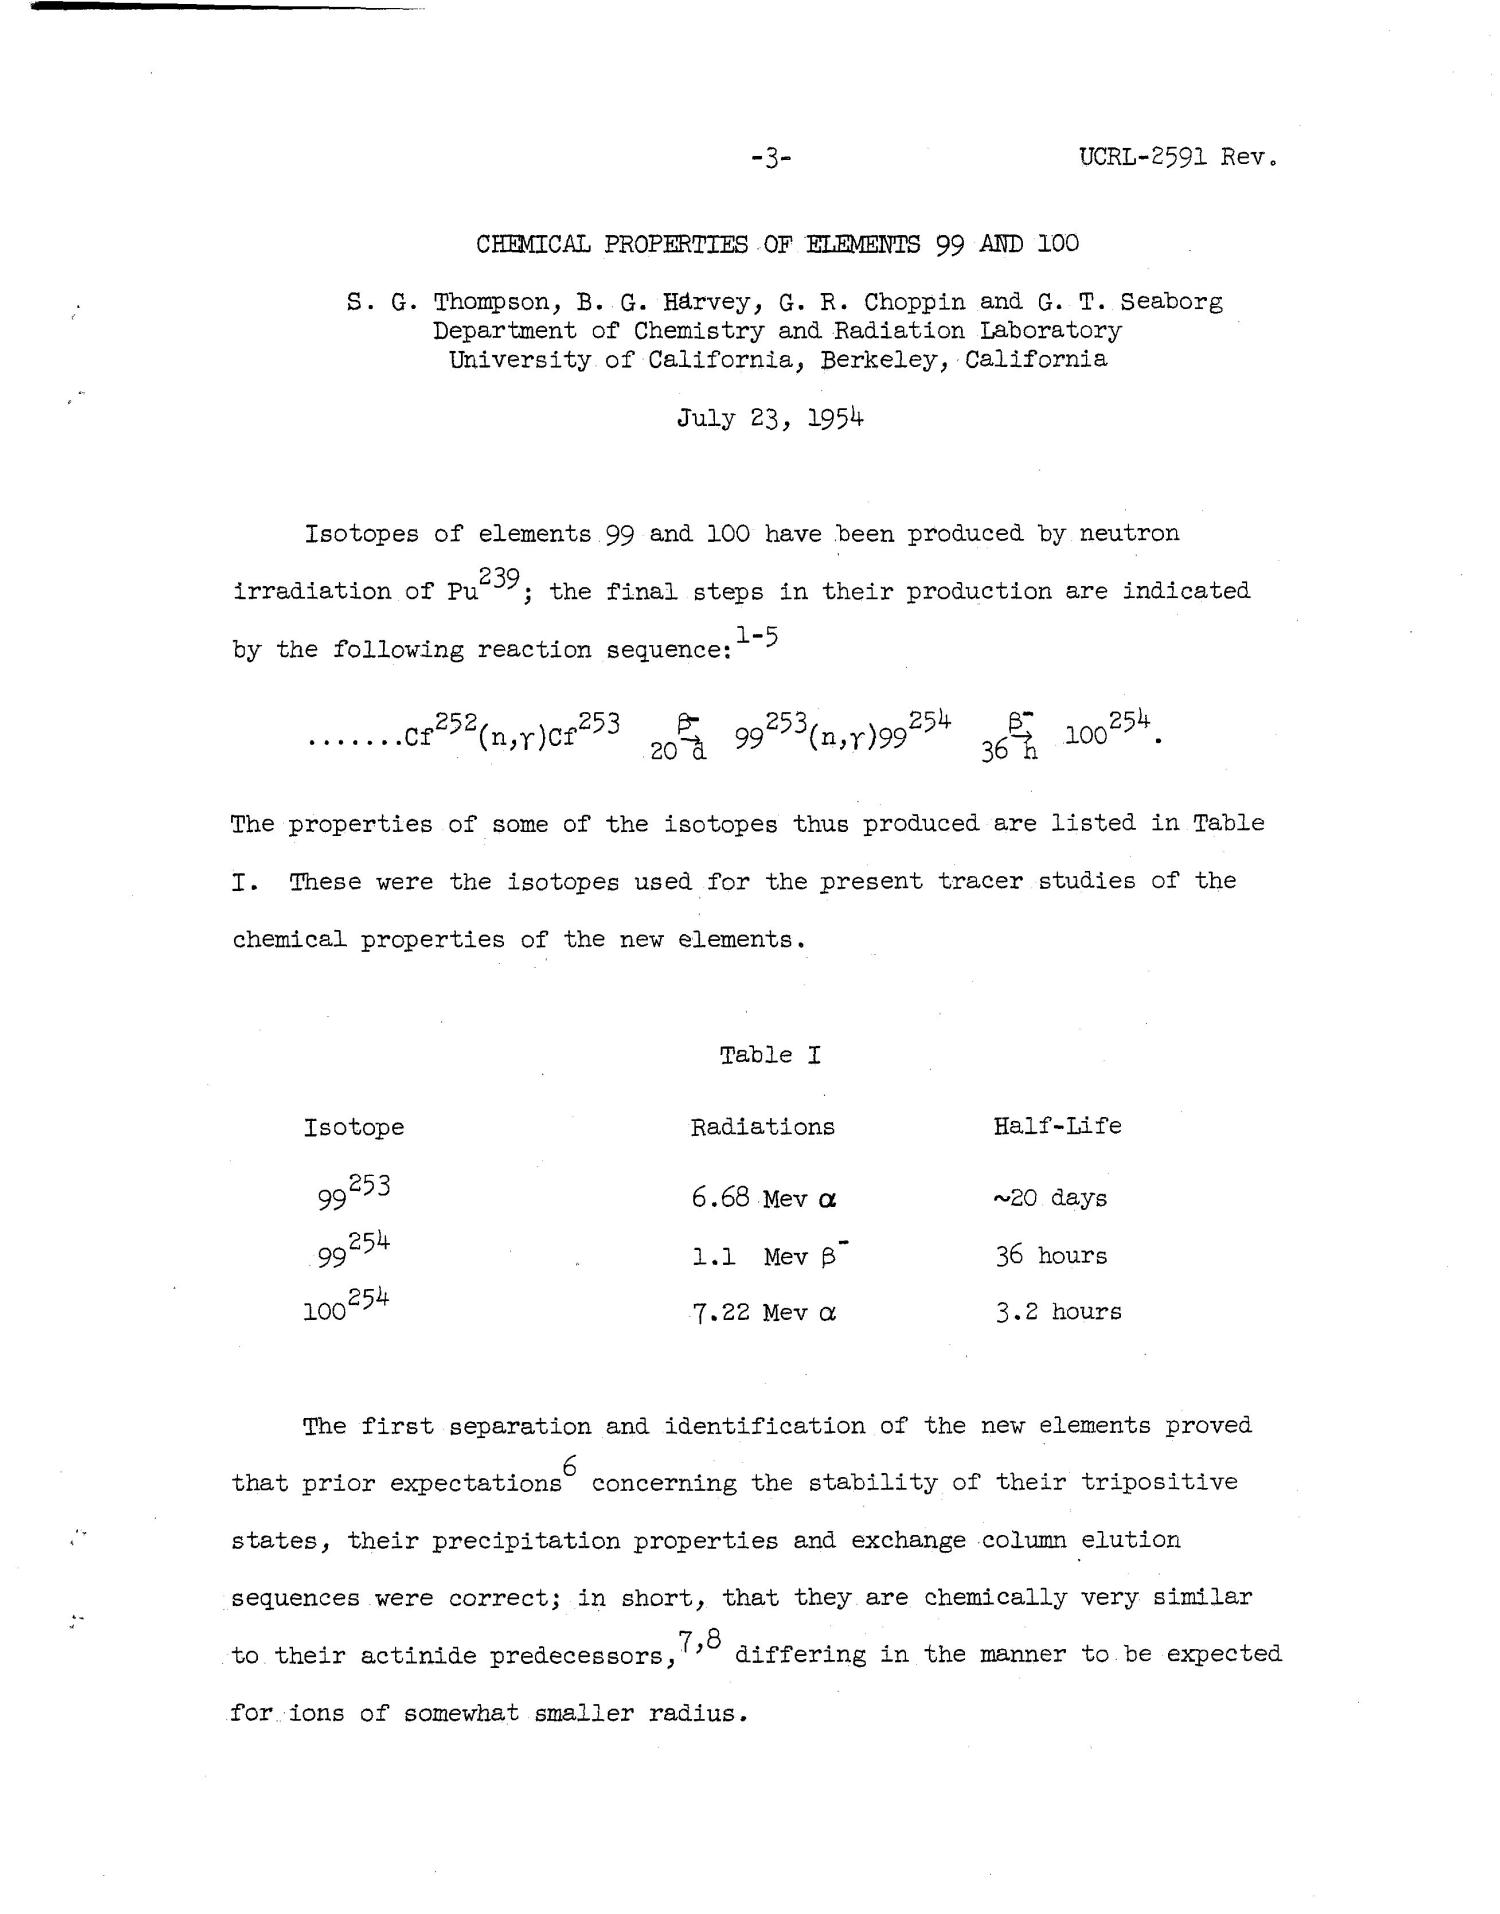 Chemical Properties of Elements 99 and 100                                                                                                      [Sequence #]: 3 of 36